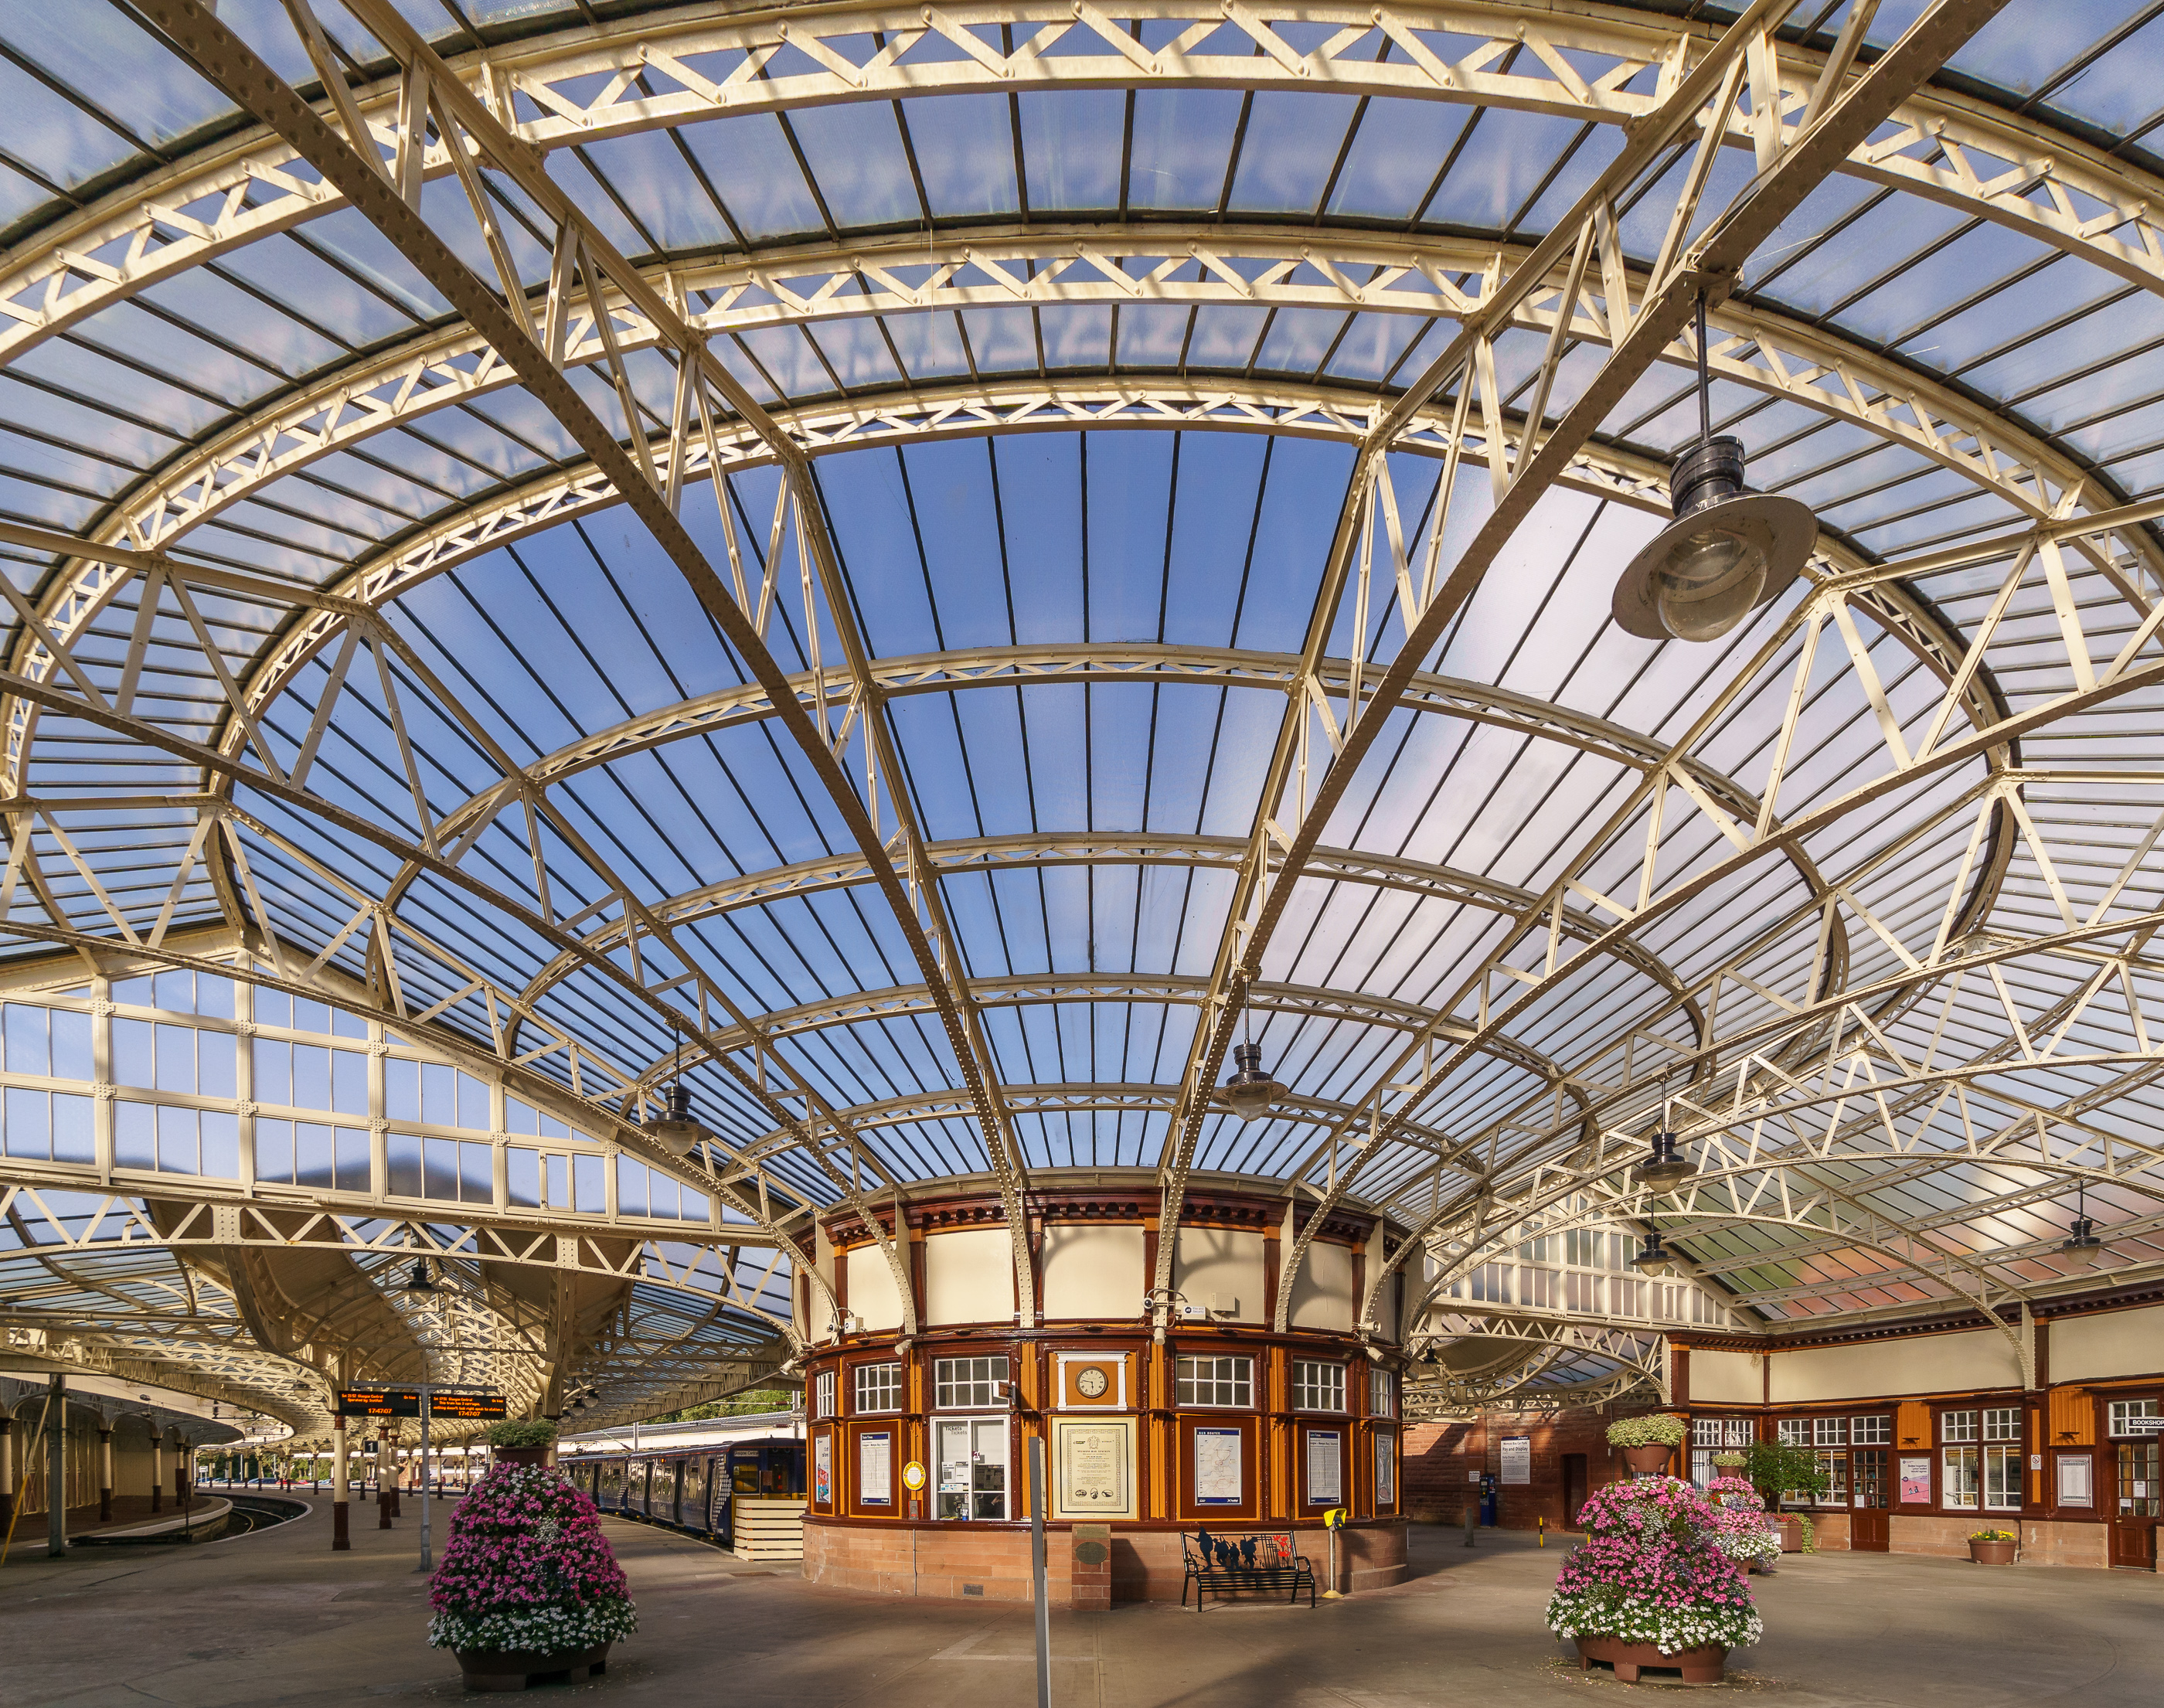 Wemyss Bay railway station concourse